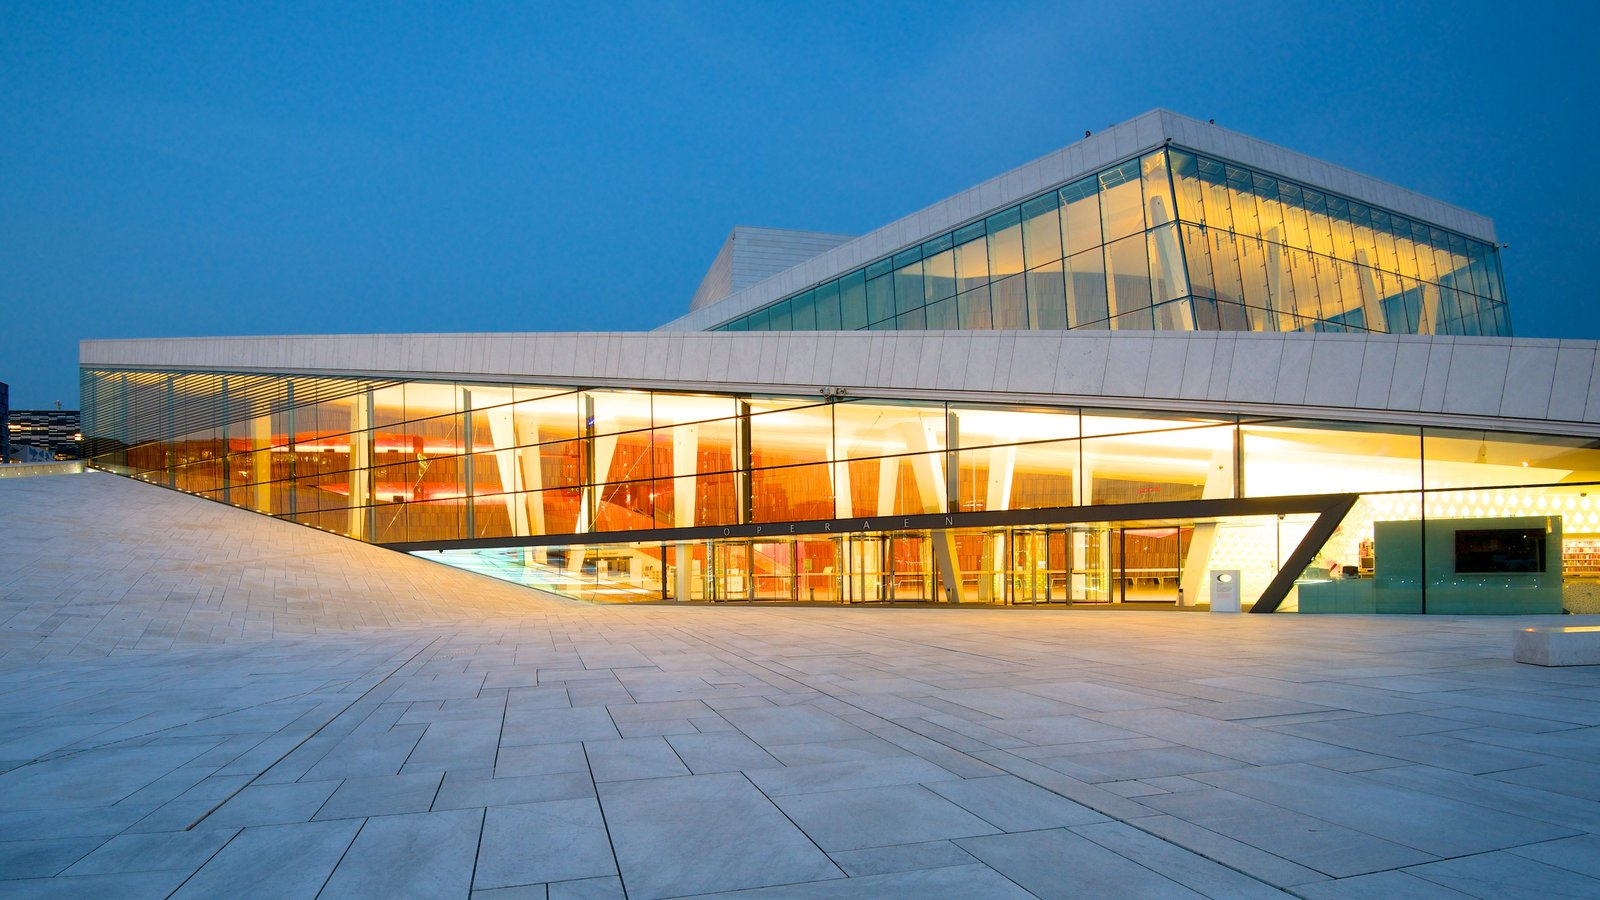 Oslo Opera House Pictures: View Photos & Images of Oslo Opera House - ^